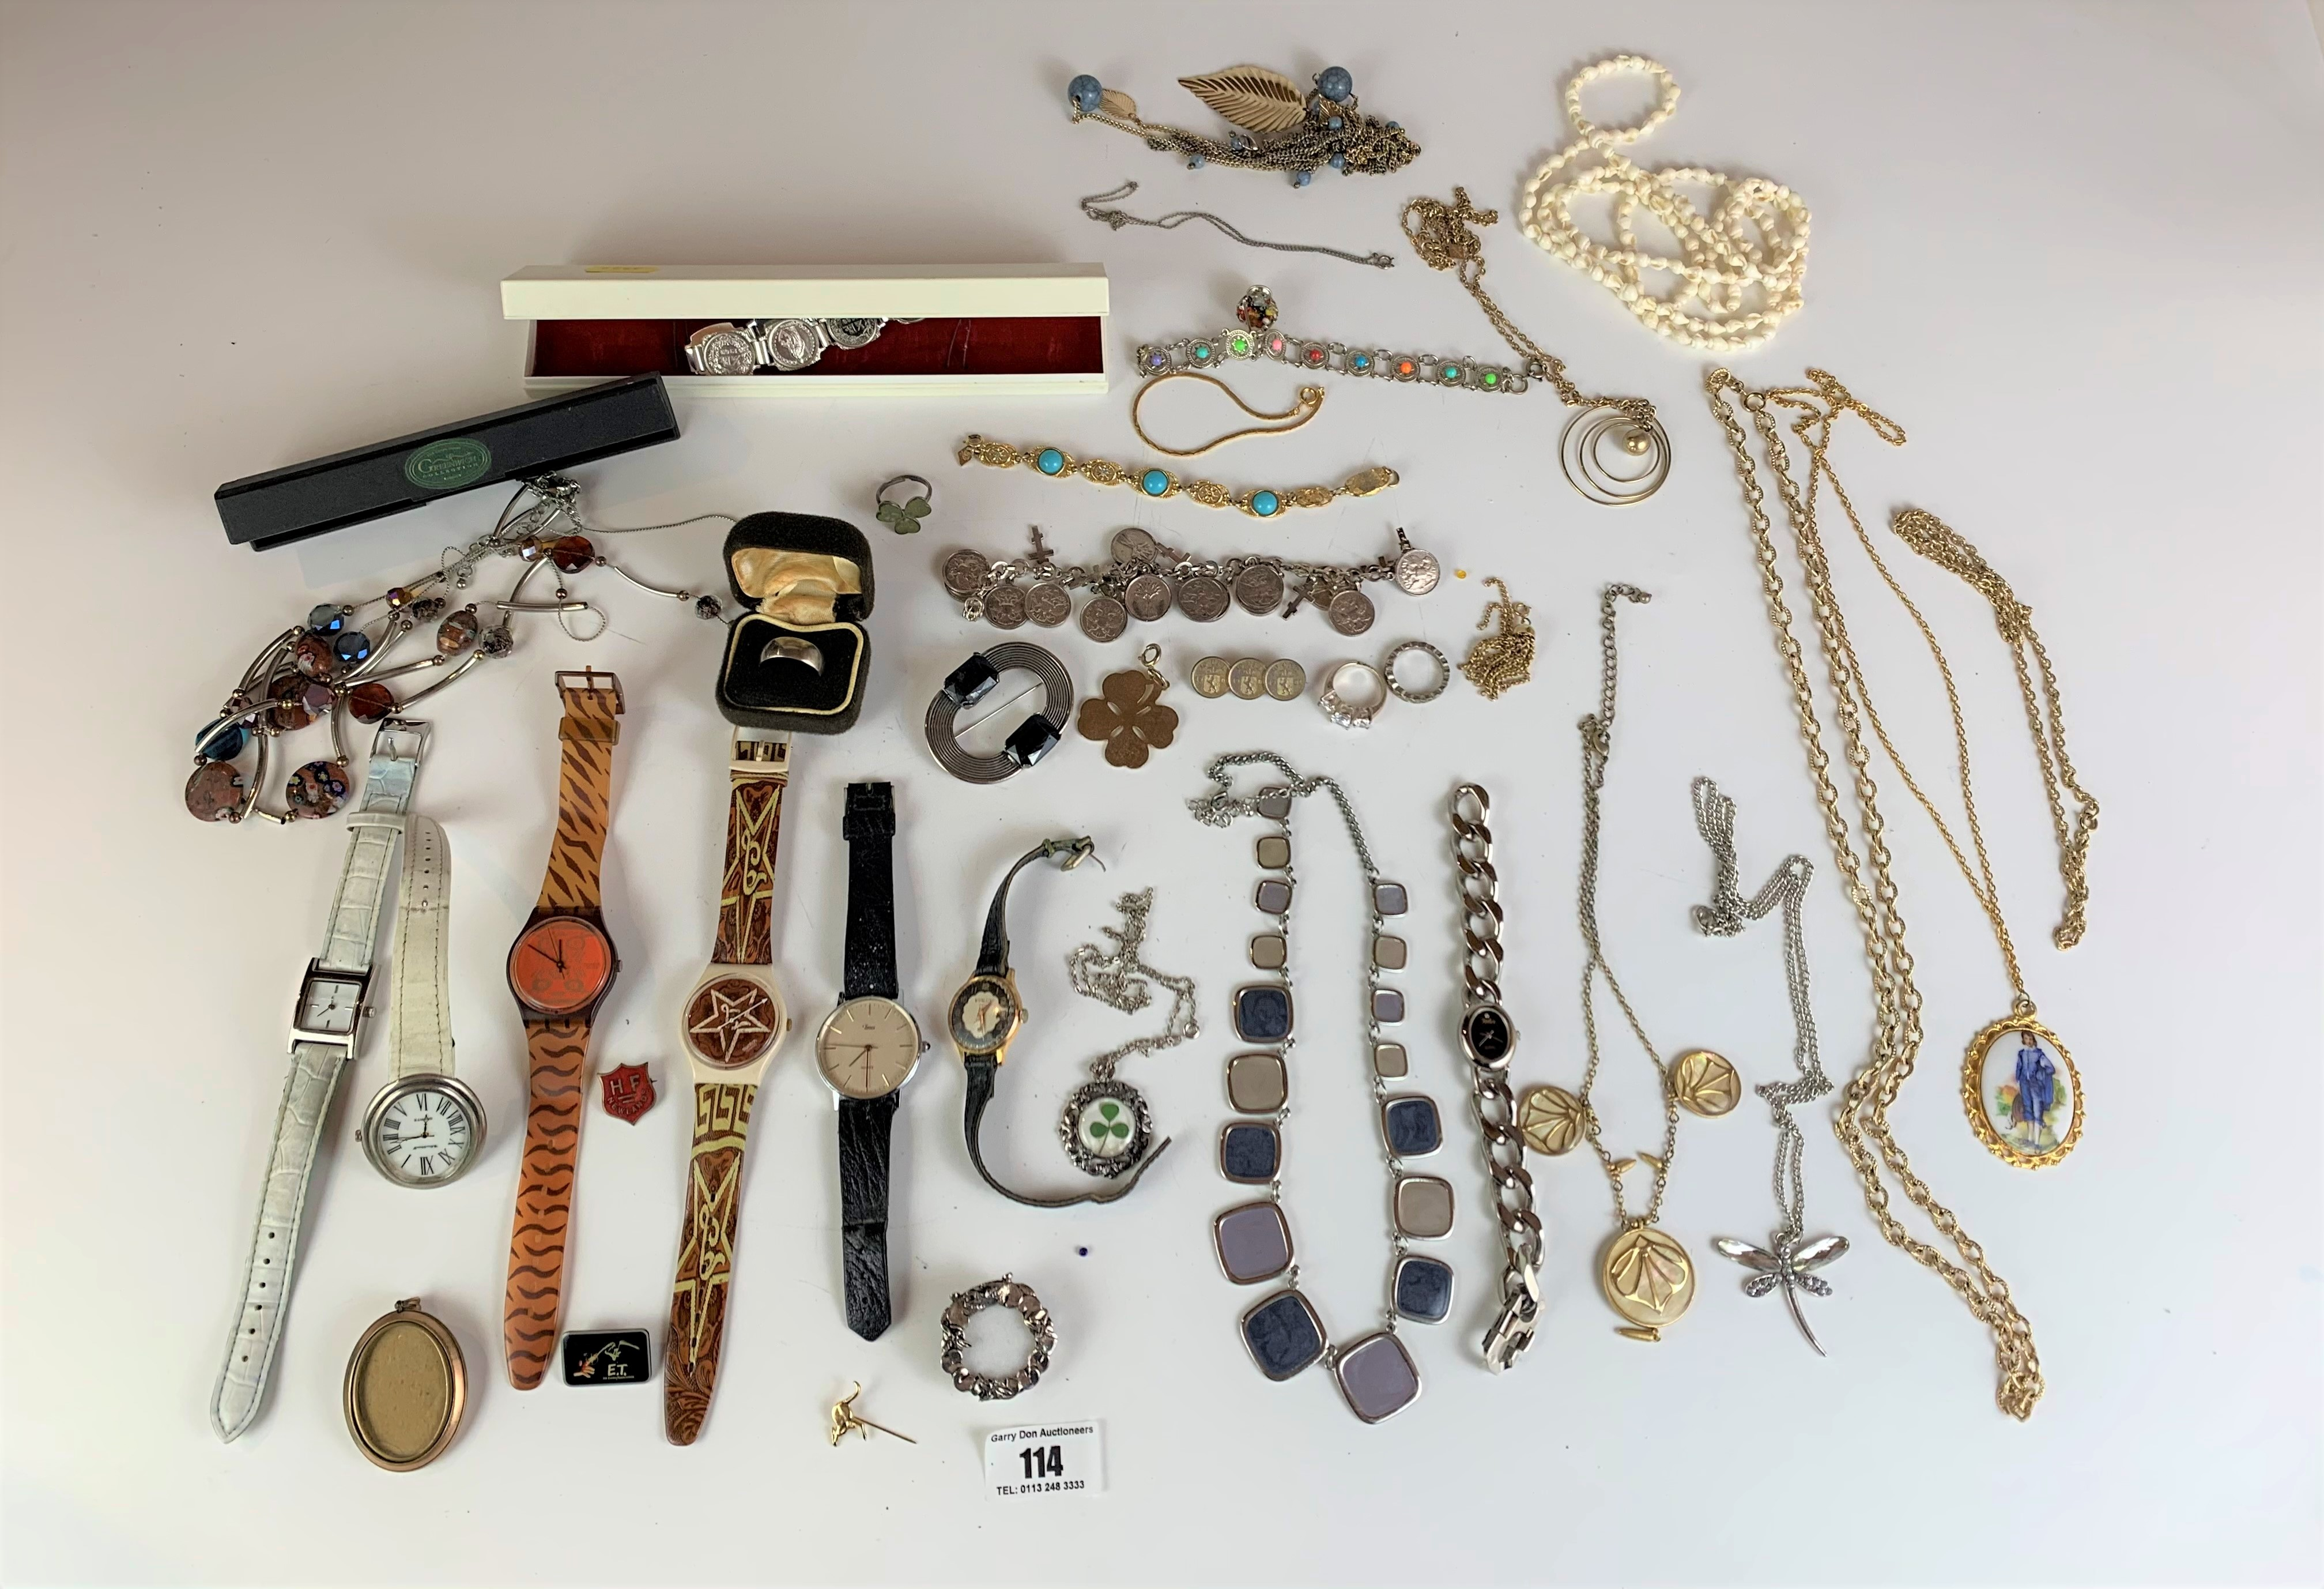 Large bag of assorted dress jewellery including watches, necklaces, bracelets, brooches etc. - Image 2 of 10